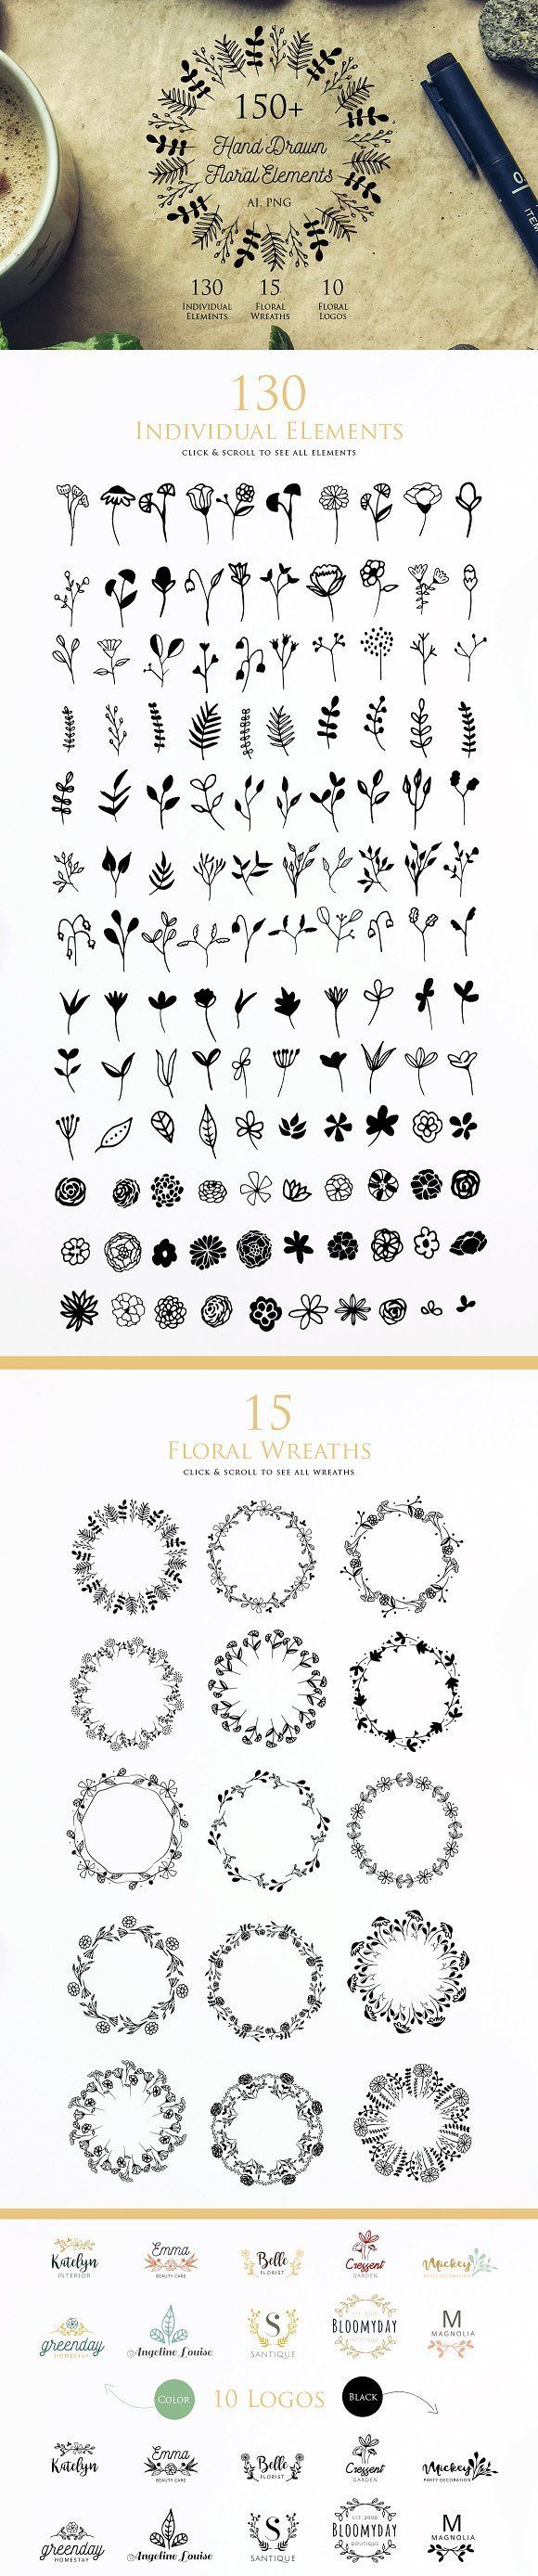 Hand Drawn Floral Elements by iamwulano on @creativemarket | Doodles